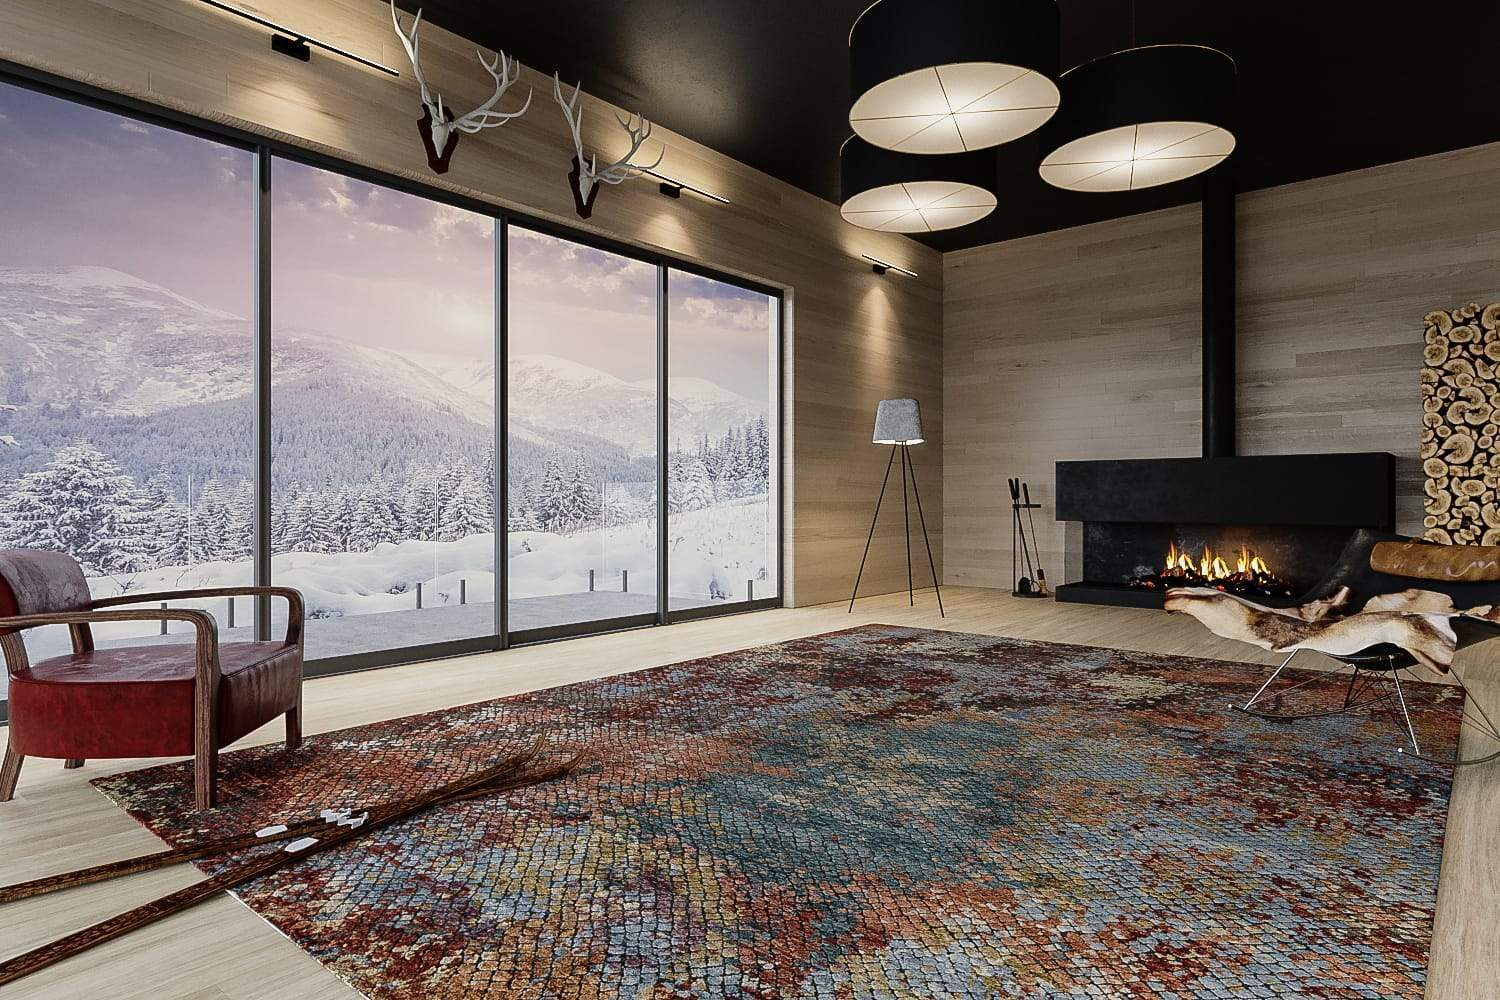 Installation shot of Foundry Copper, a hand knotted rug designed by Tufenkian Artisan Carpets. room-image